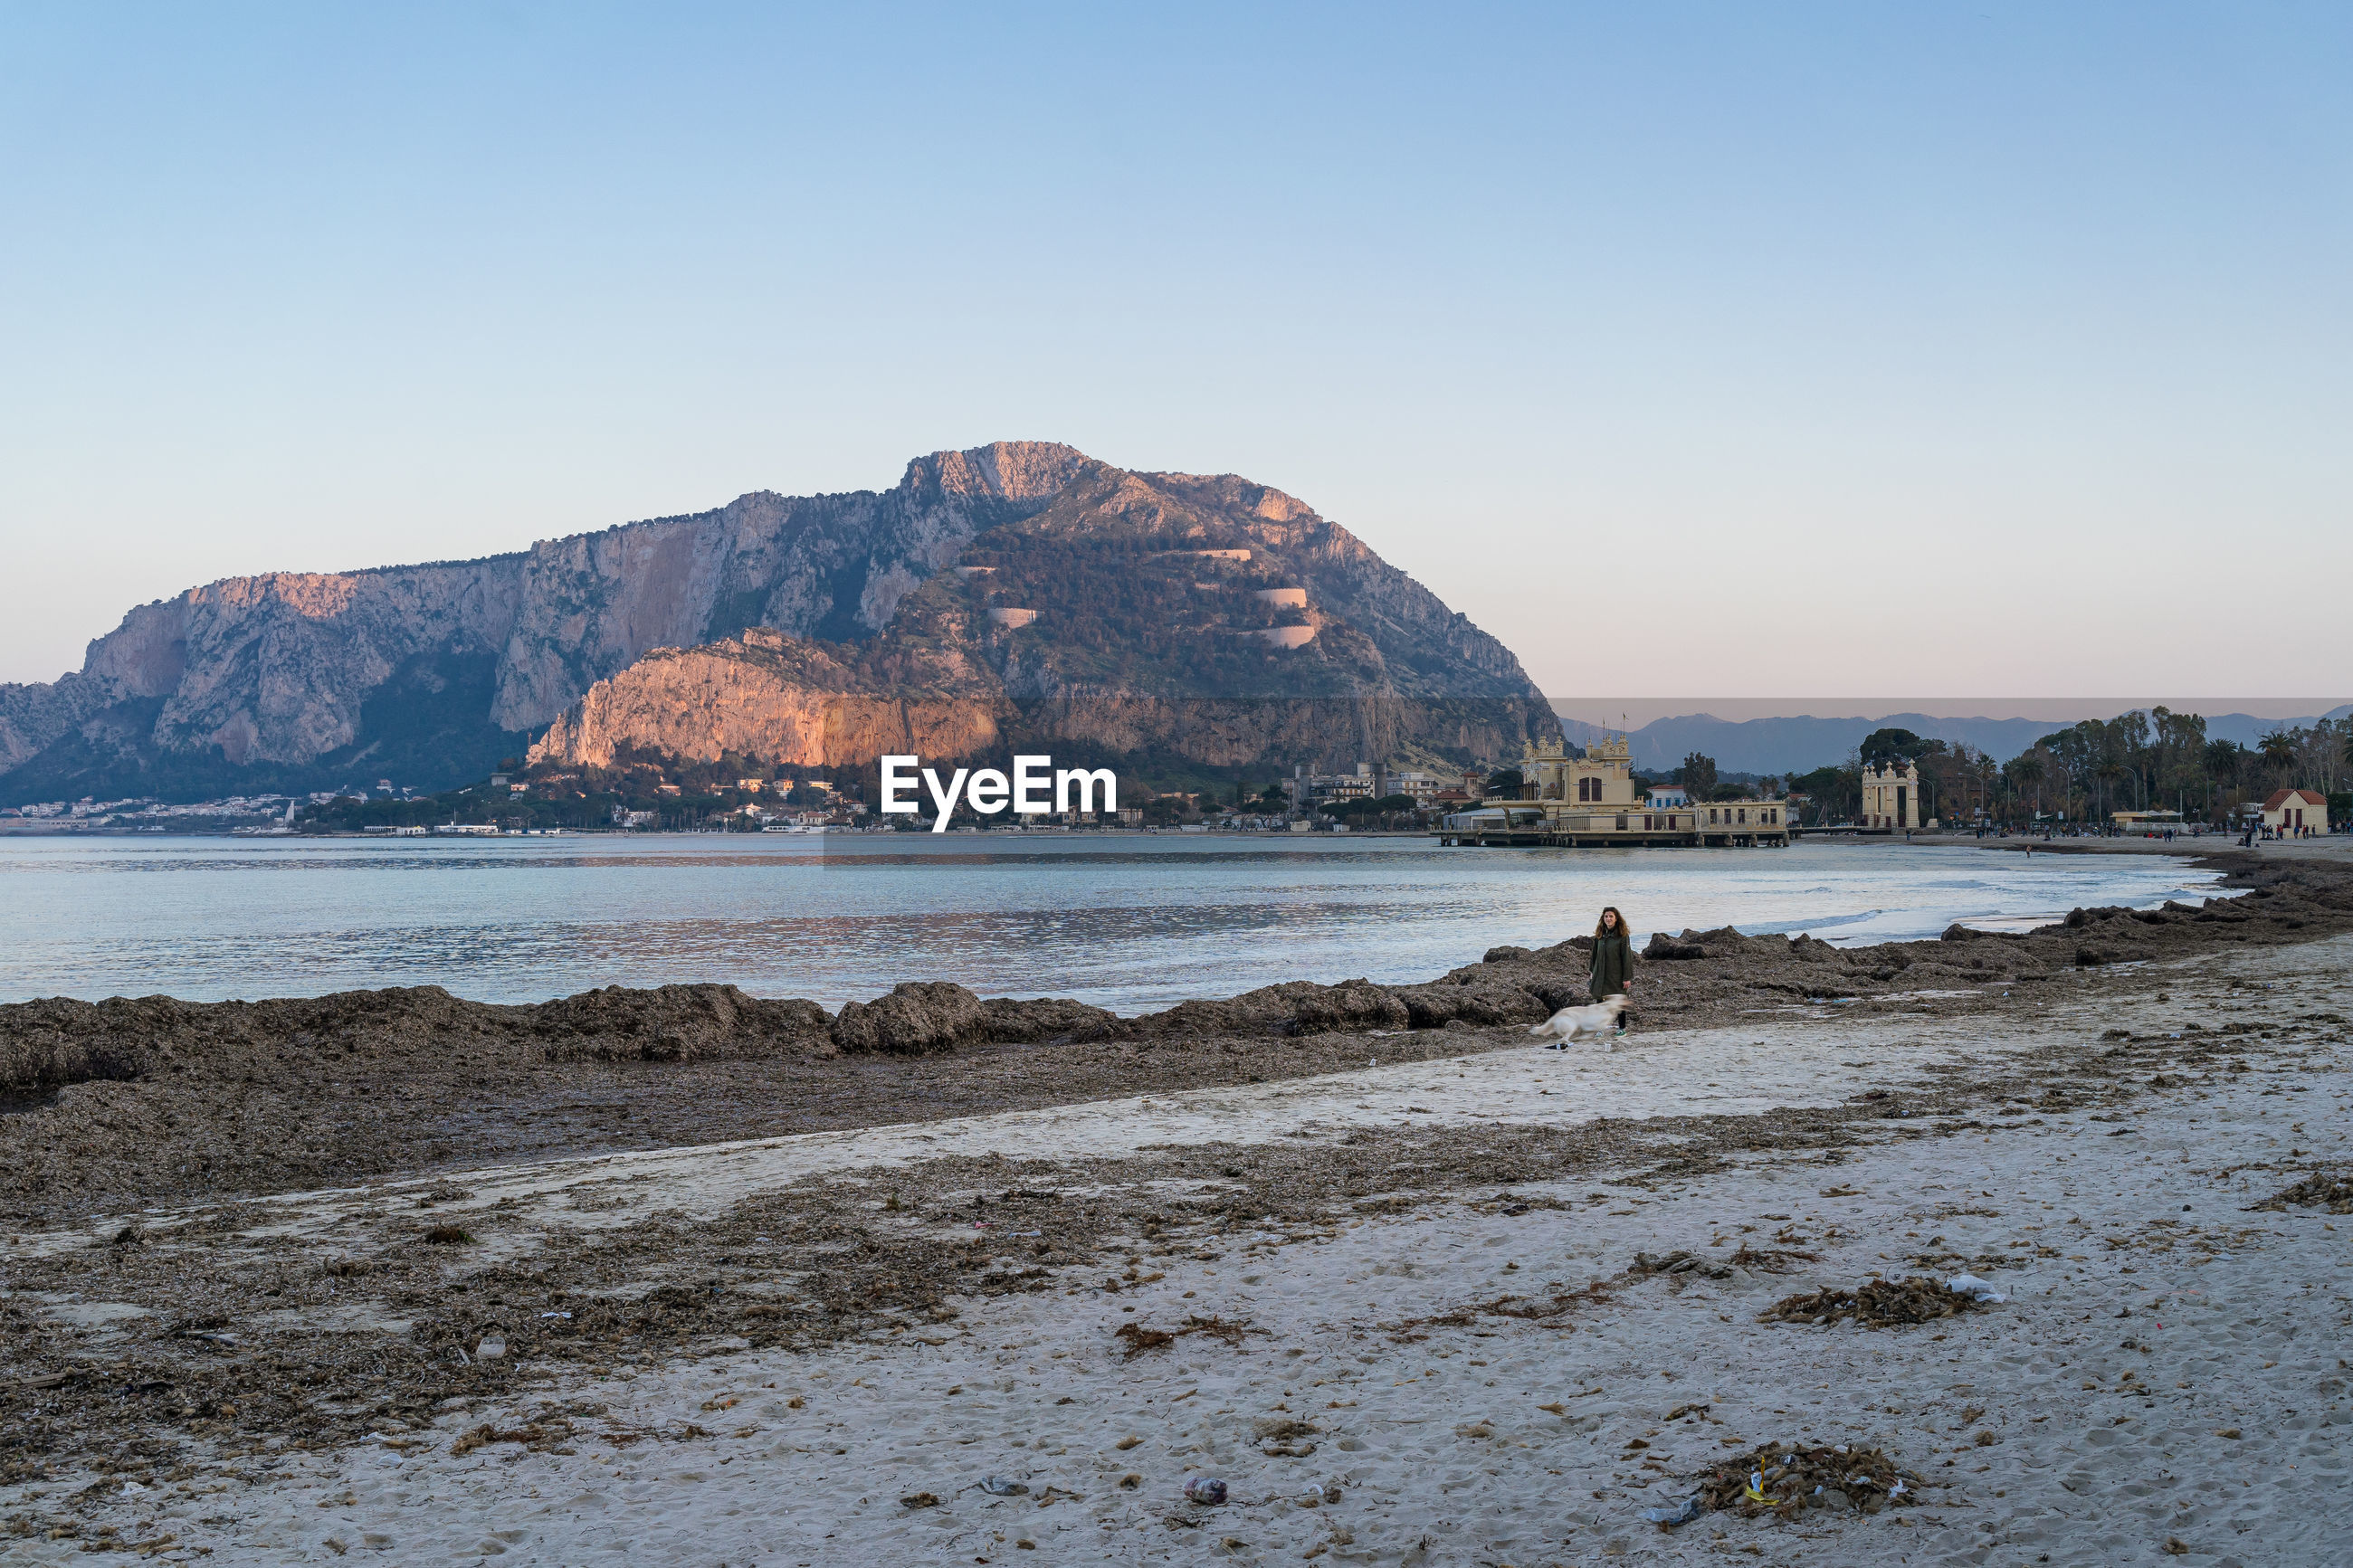 SCENIC VIEW OF BEACH AND MOUNTAINS AGAINST CLEAR SKY